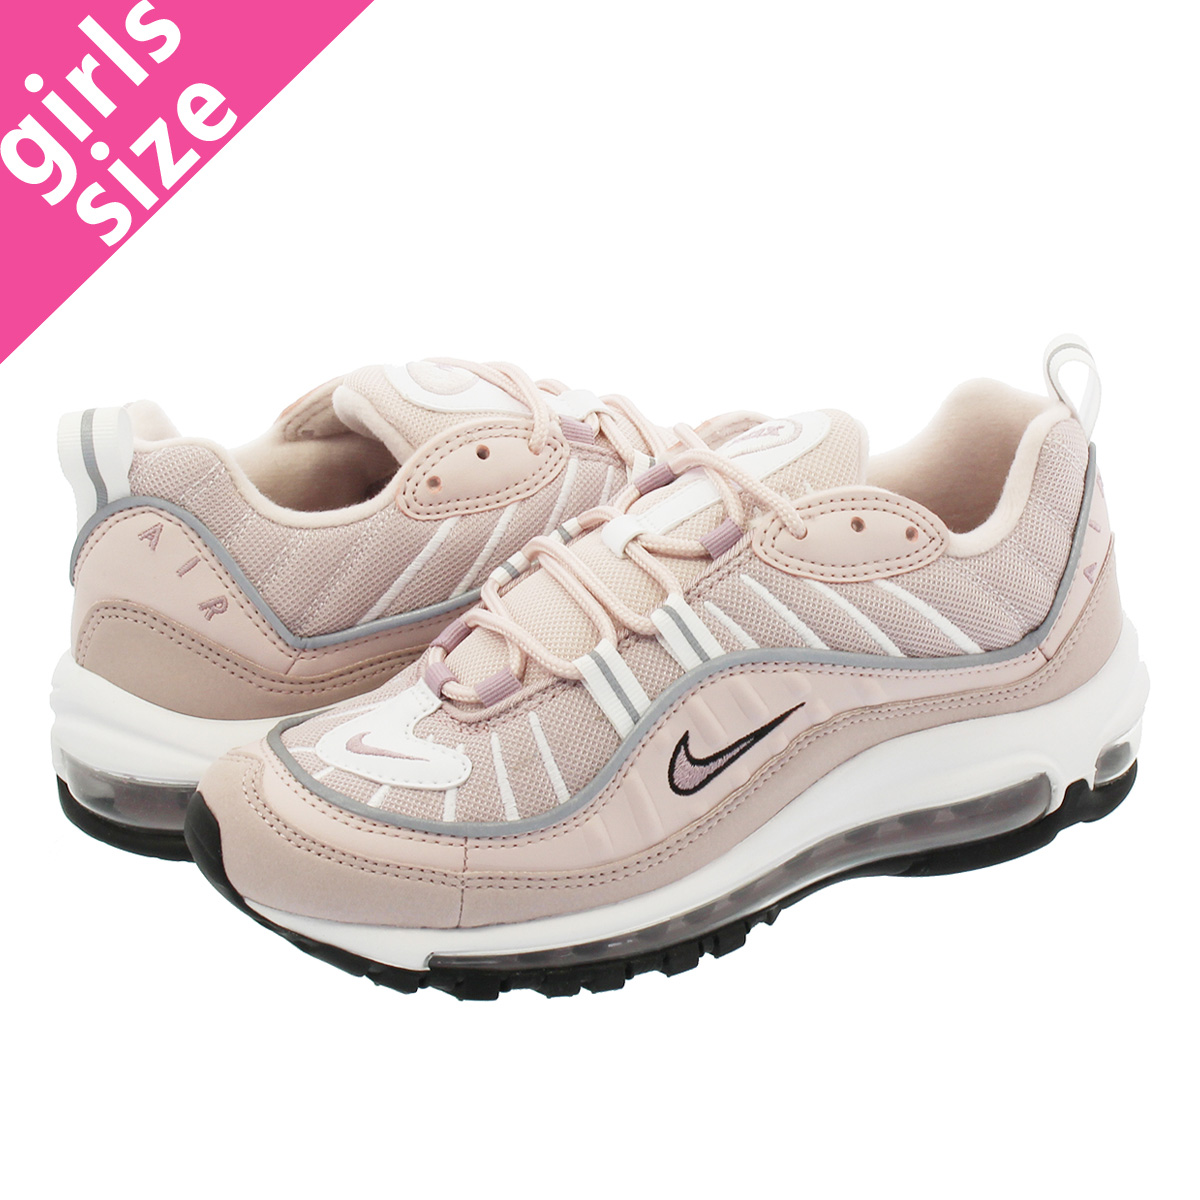 NIKE WMNS AIR MAX 98 Nike women Air Max 98 BARELY ROSEELEMENTAL ROSEPARTICLE ROSE ah6799 600 l